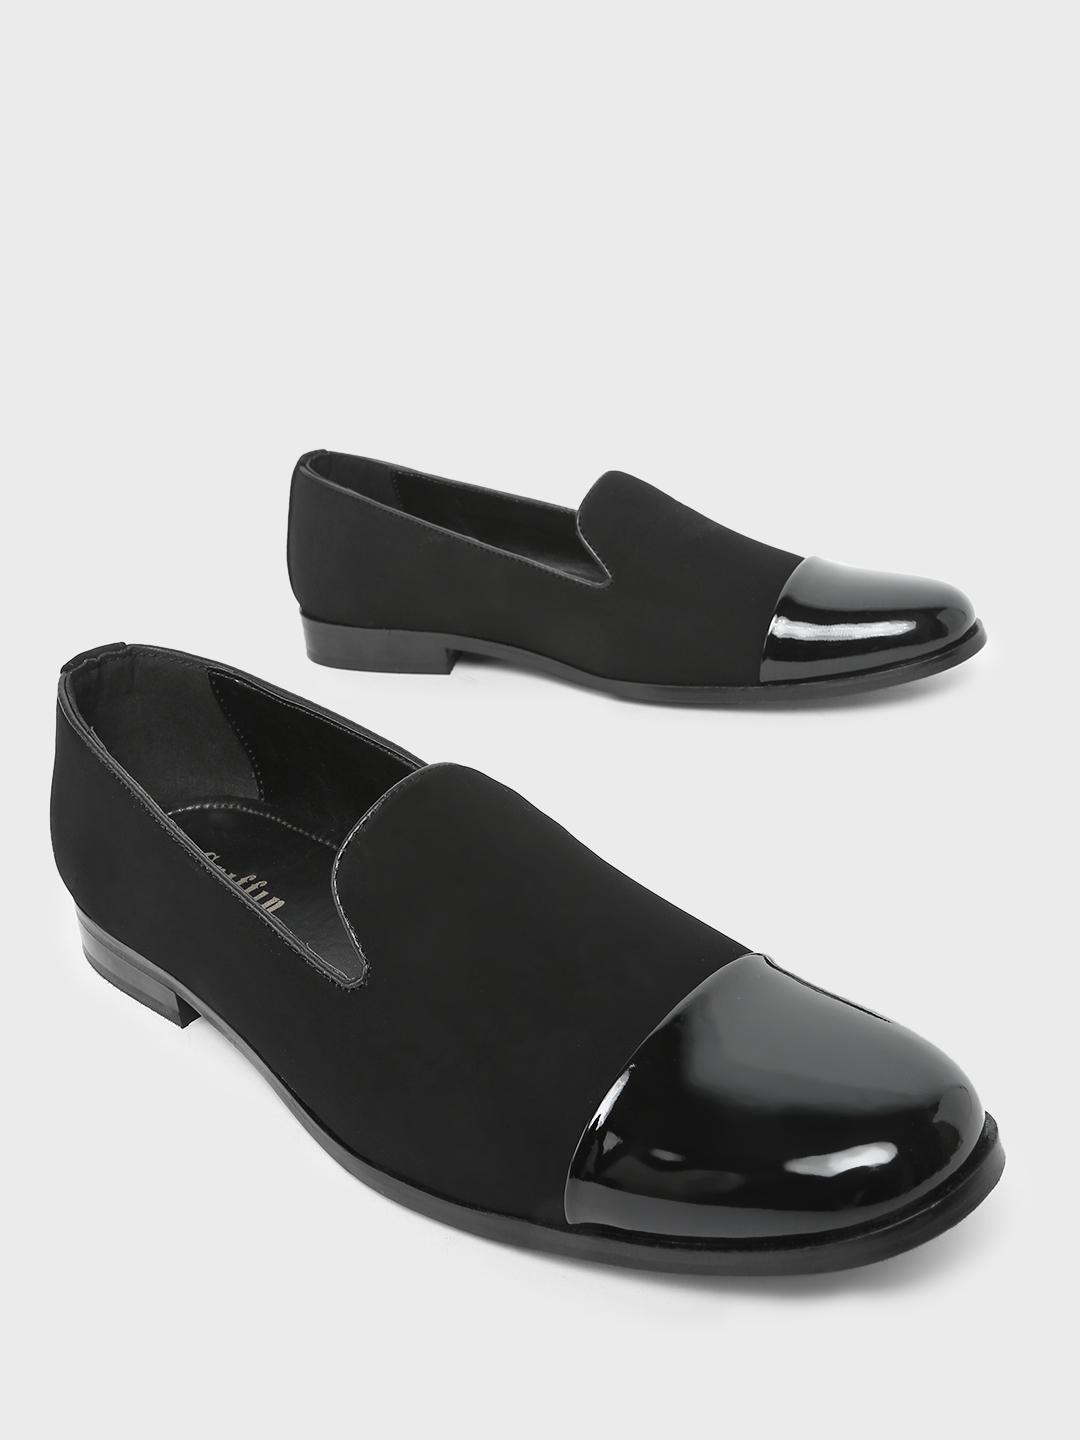 Griffin Black Patent Toe Cap Loafers 1